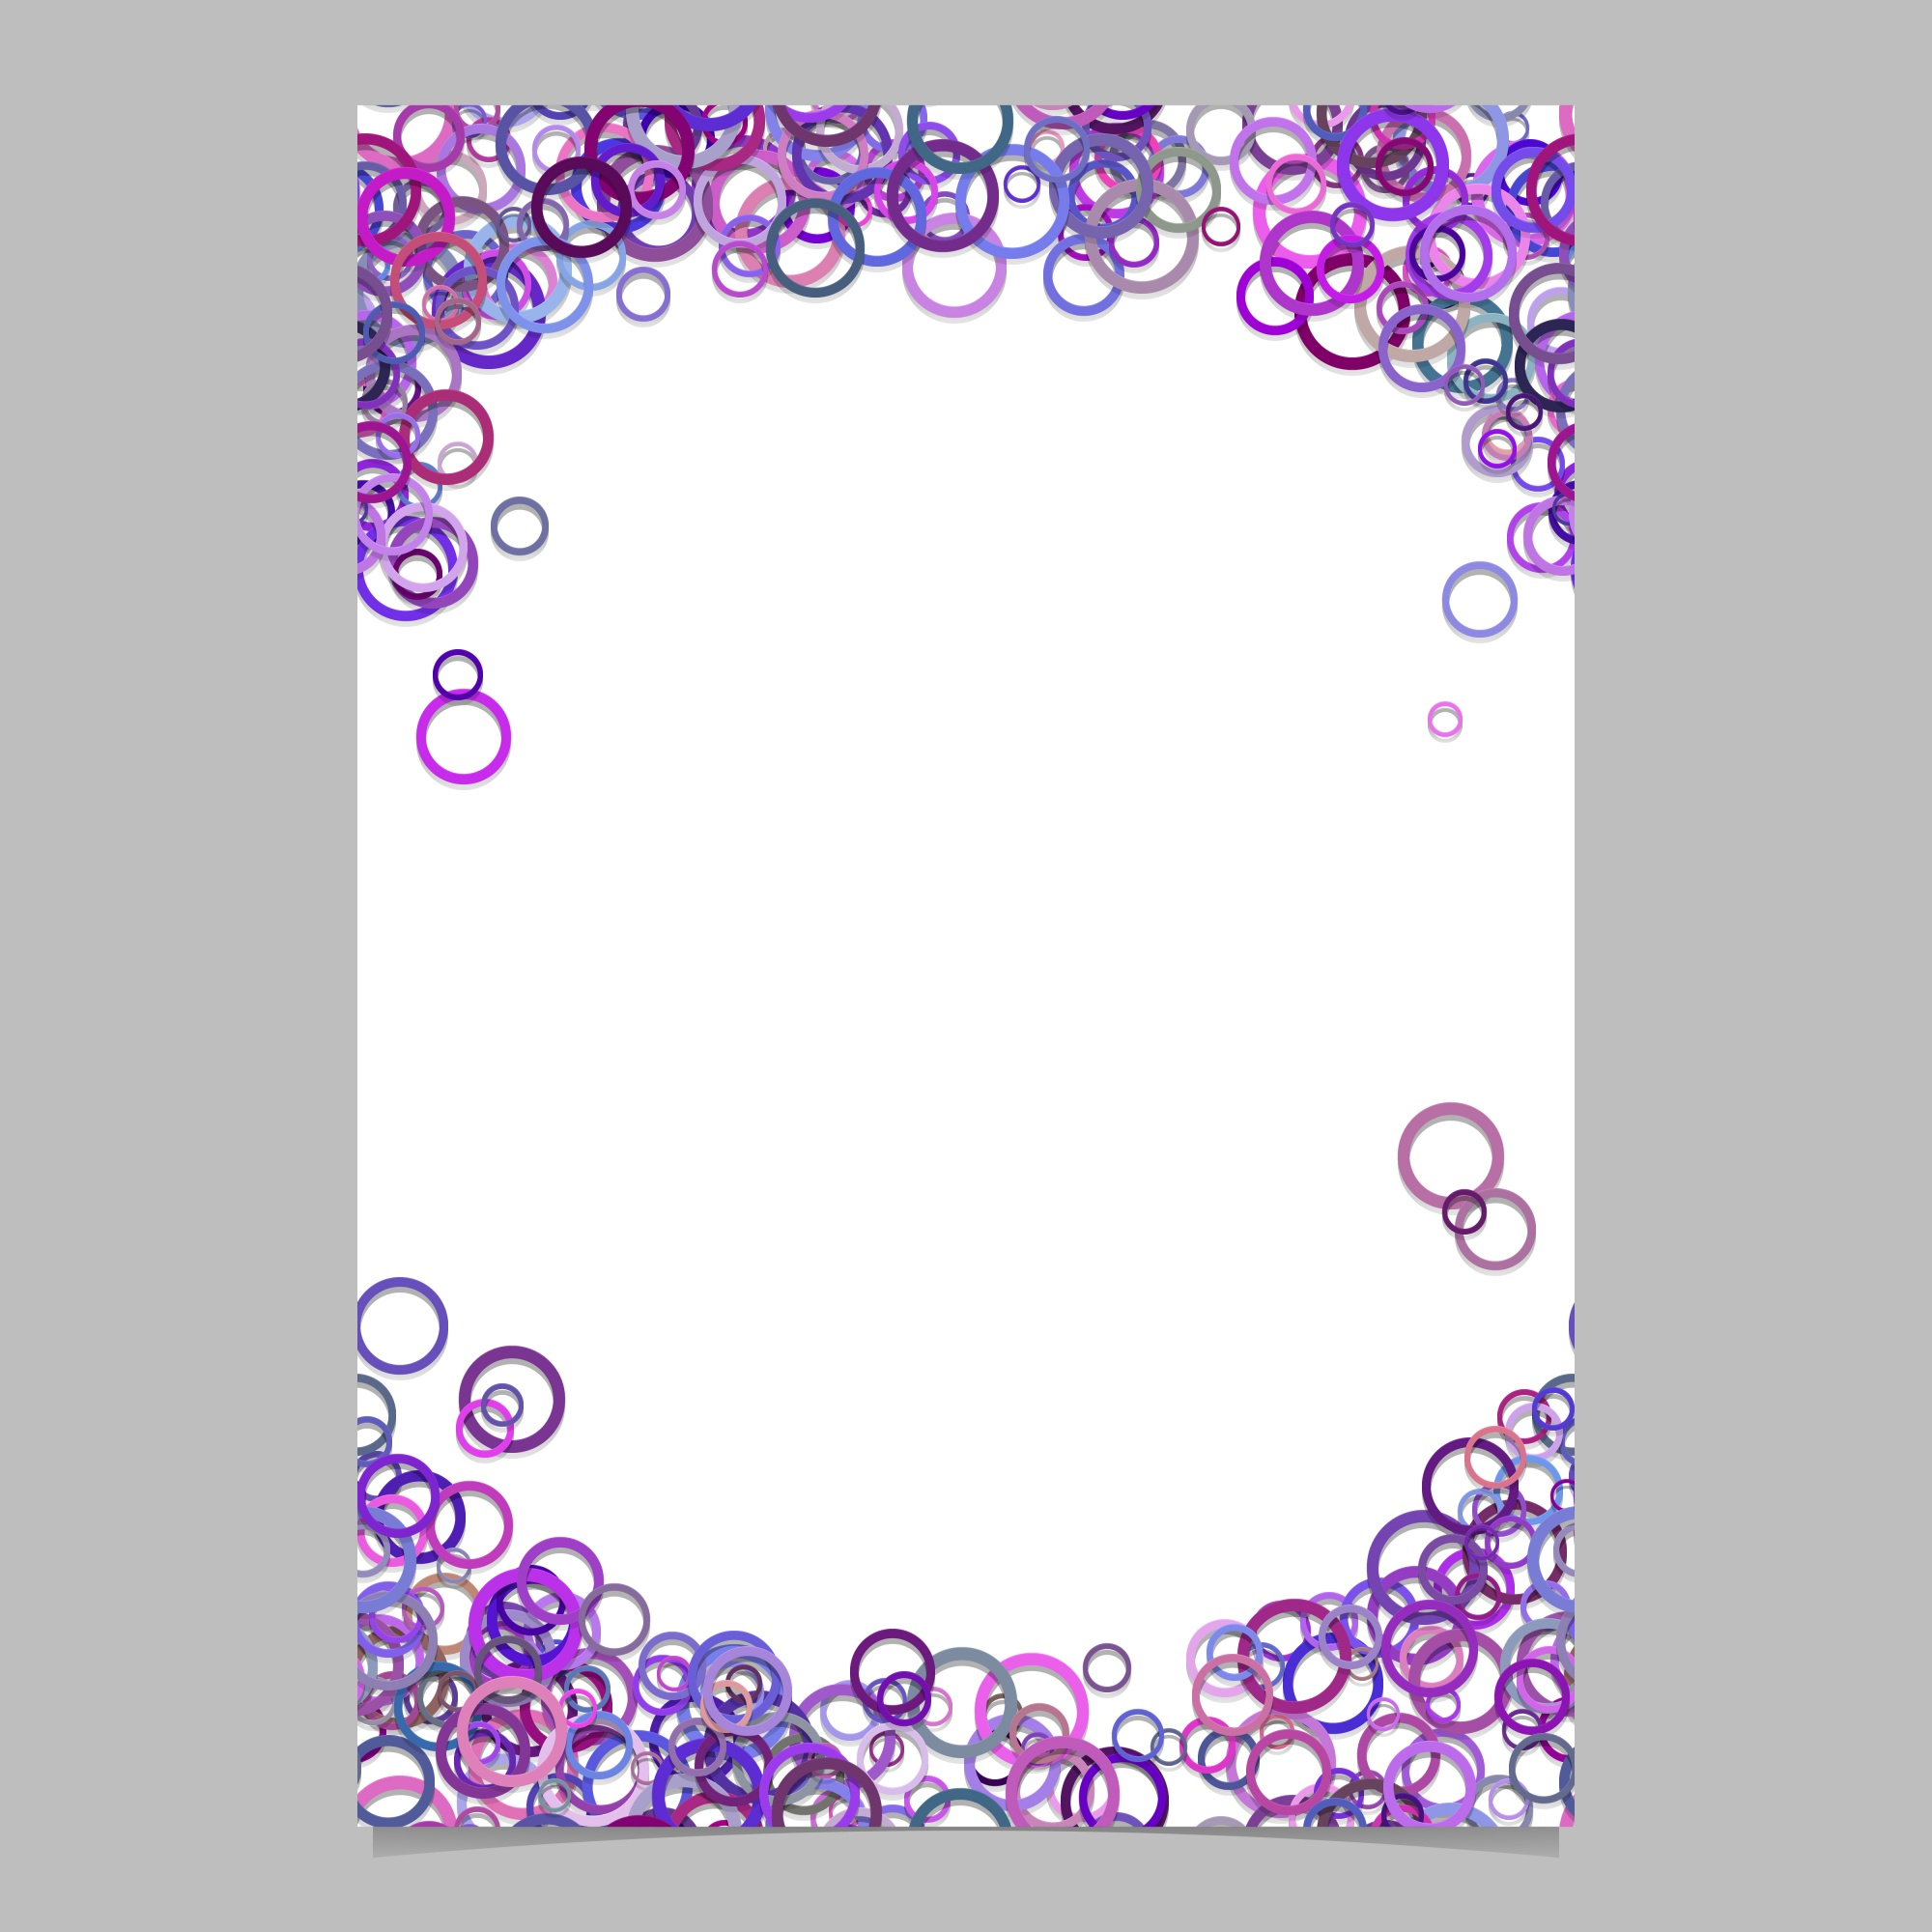 Modern random circle pattern page background template - vector blank brochure frame graphic design with purple rings